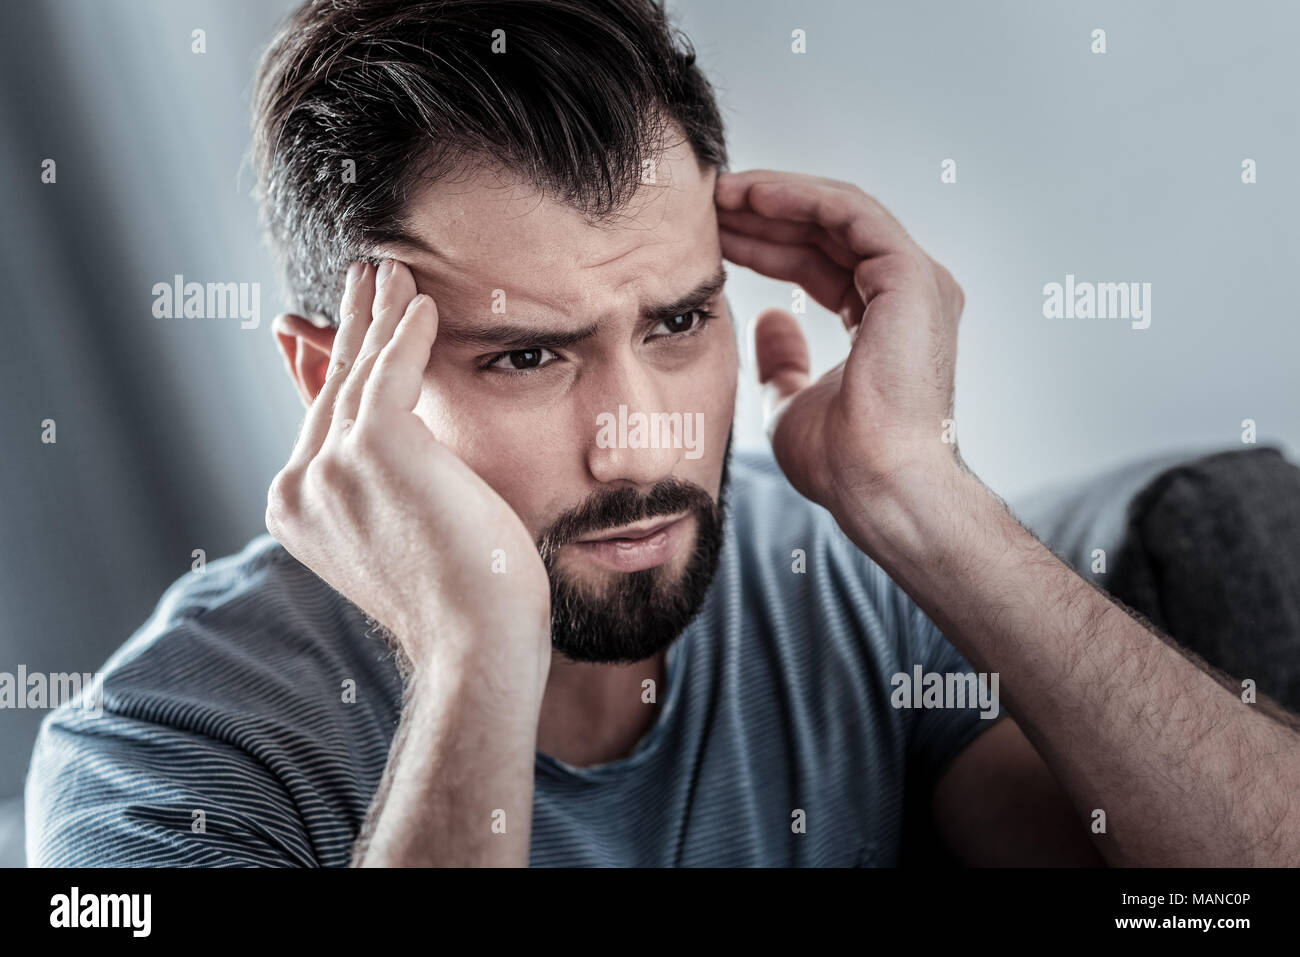 Depressed unhappy man having a headache - Stock Image